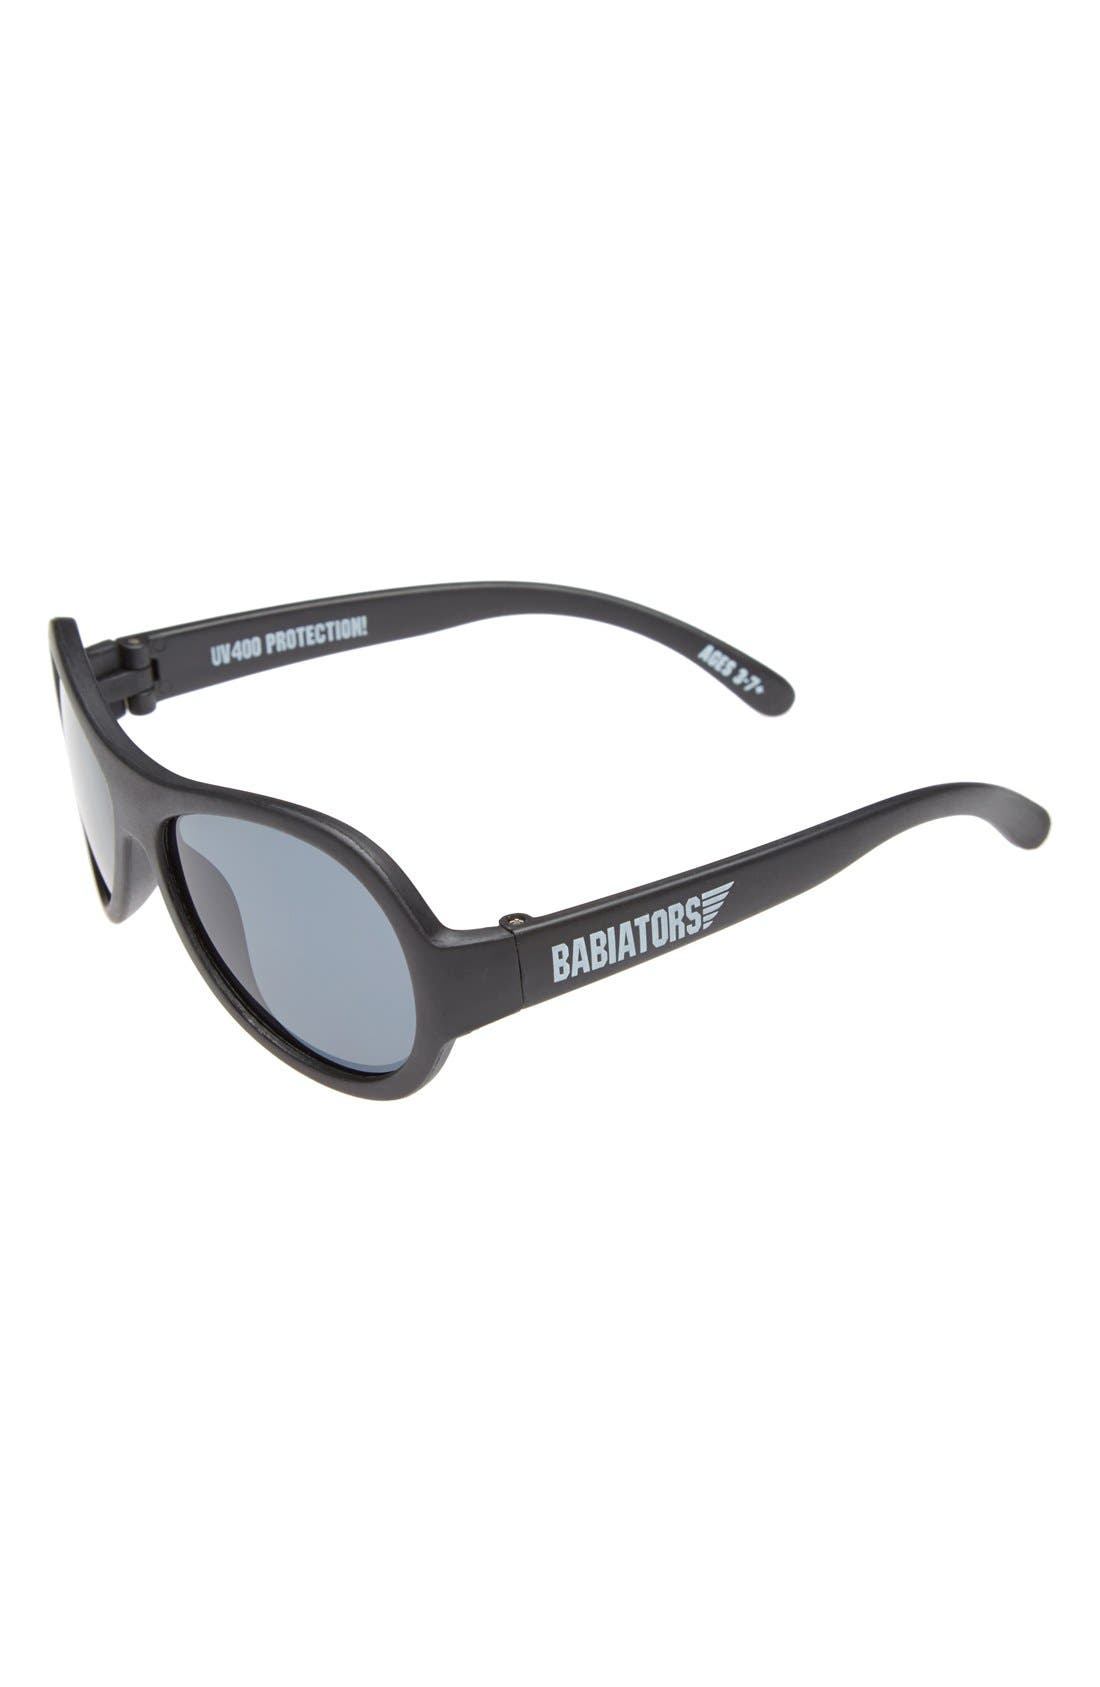 Alternate Image 1 Selected - Babiators 'Black Ops' Sunglasses (Little Kid)